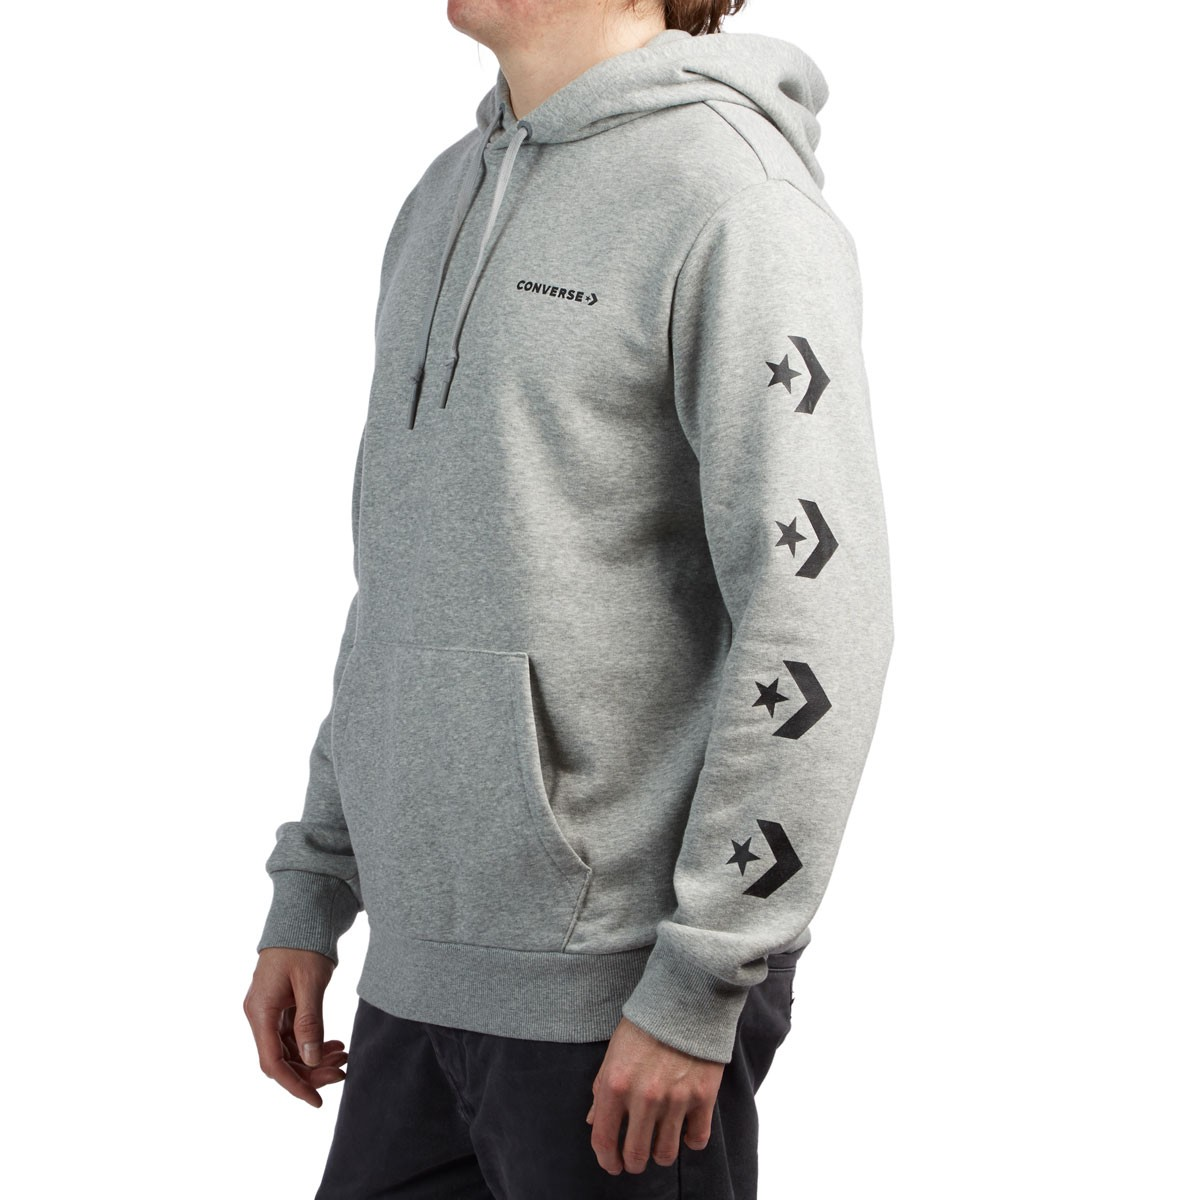 21d48ca5d548 Converse Star Chevron Pullover Hoodie - Vintage Grey Heather